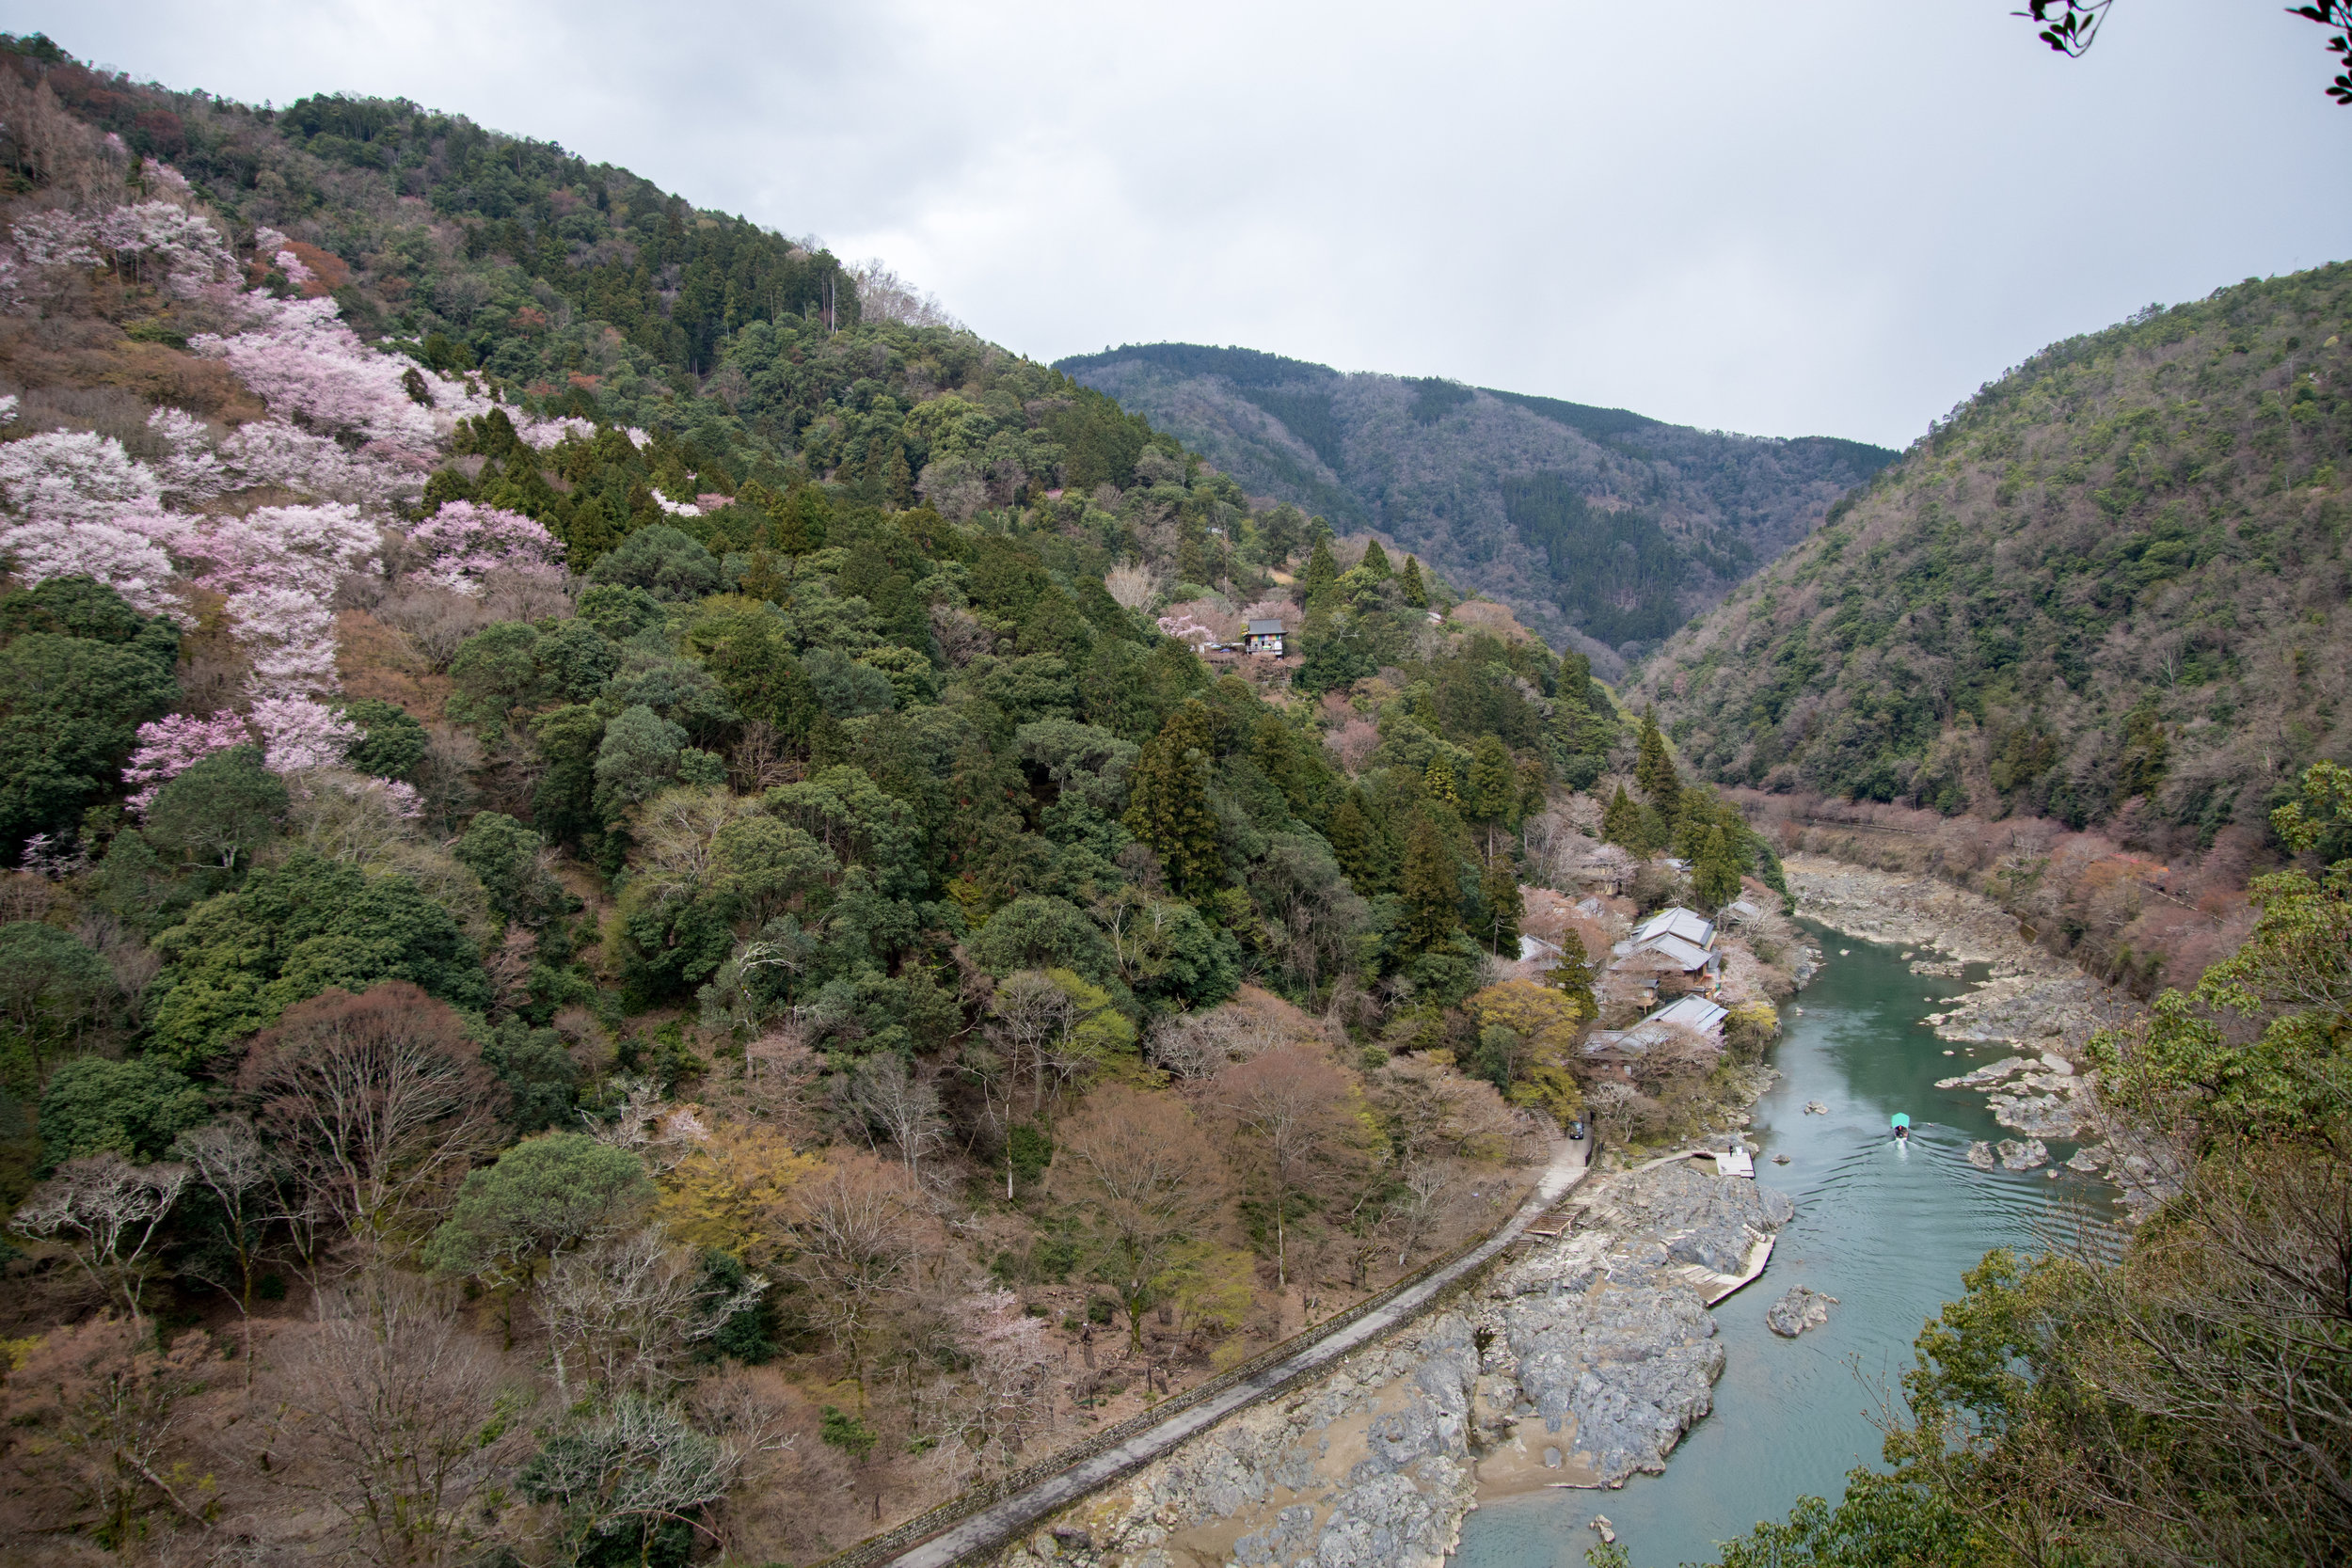 Katsura River in Arashiyama with blooming Cherry Blossoms